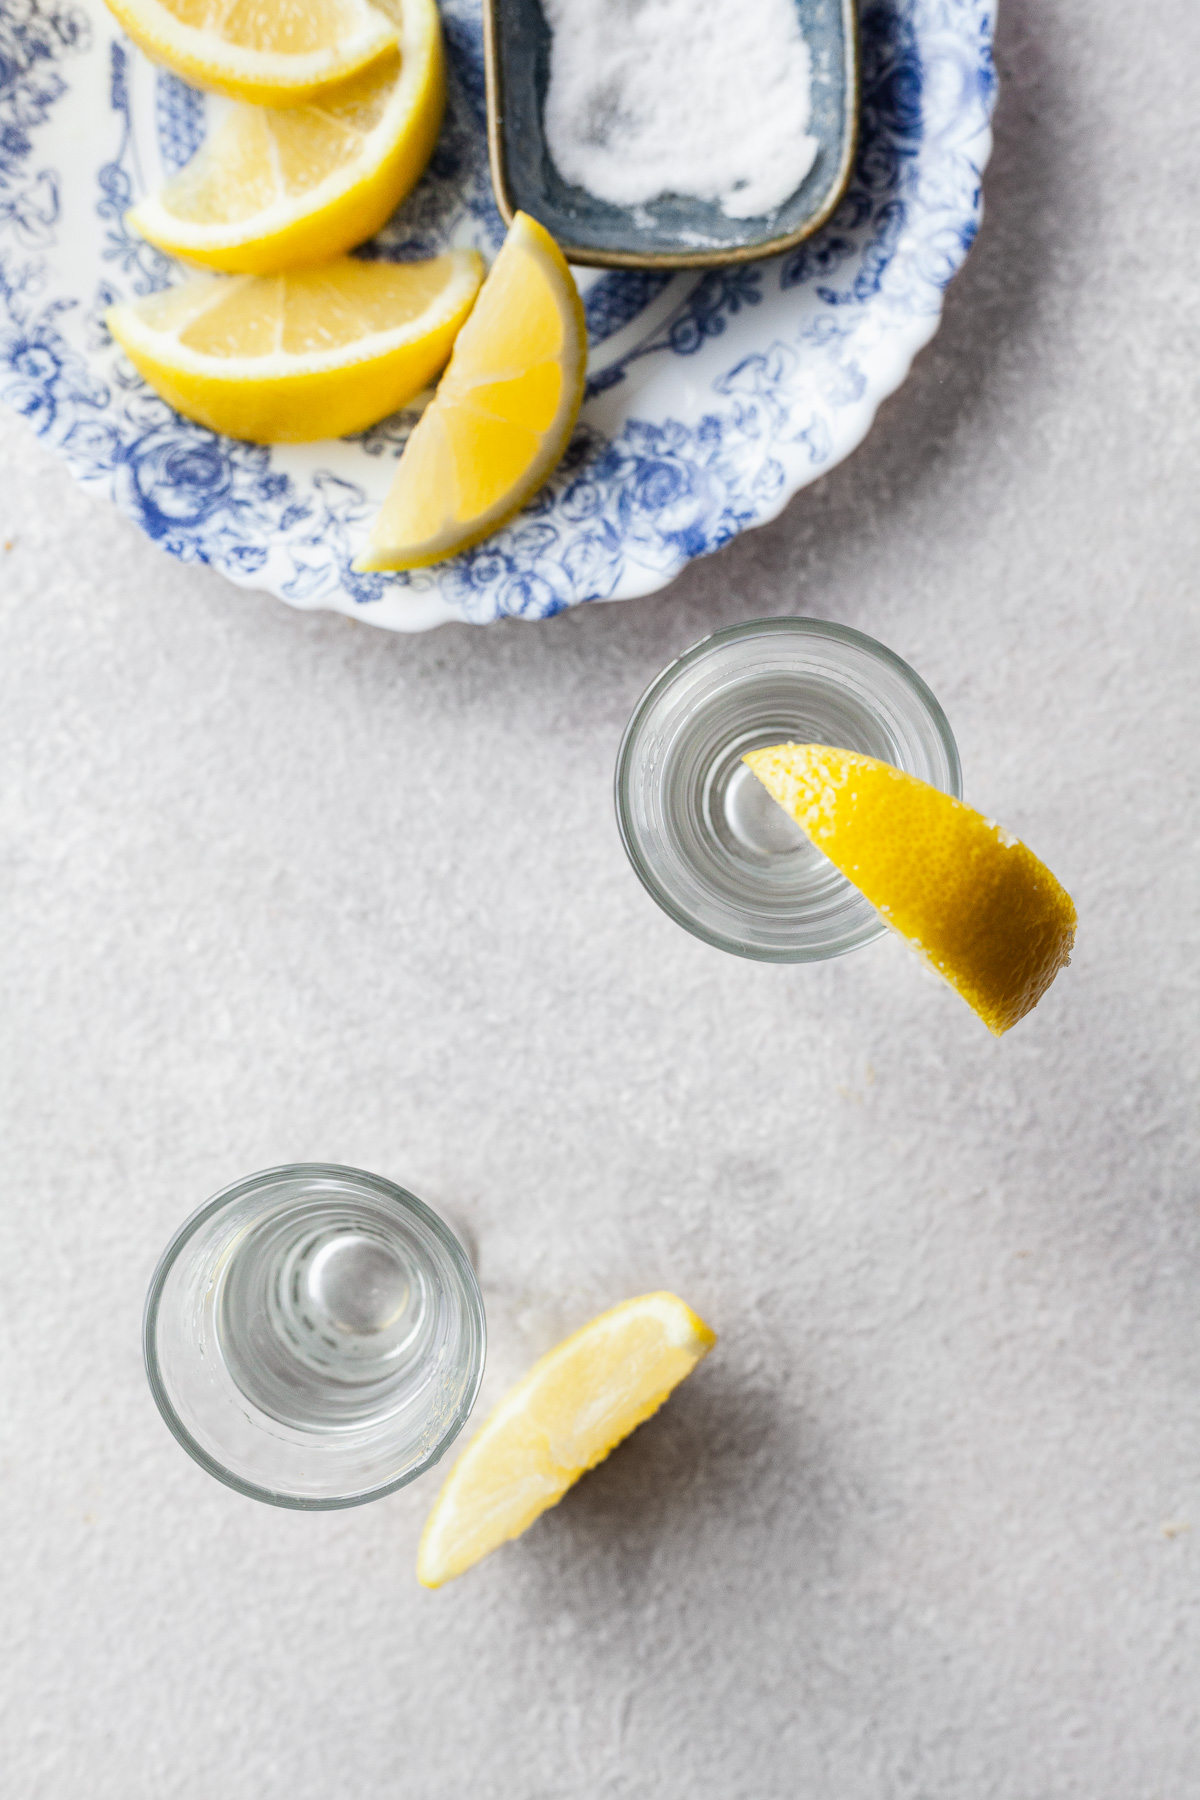 top view image of two shot glasses with vodka and lemon wedges. Plate of lemons and sugar.